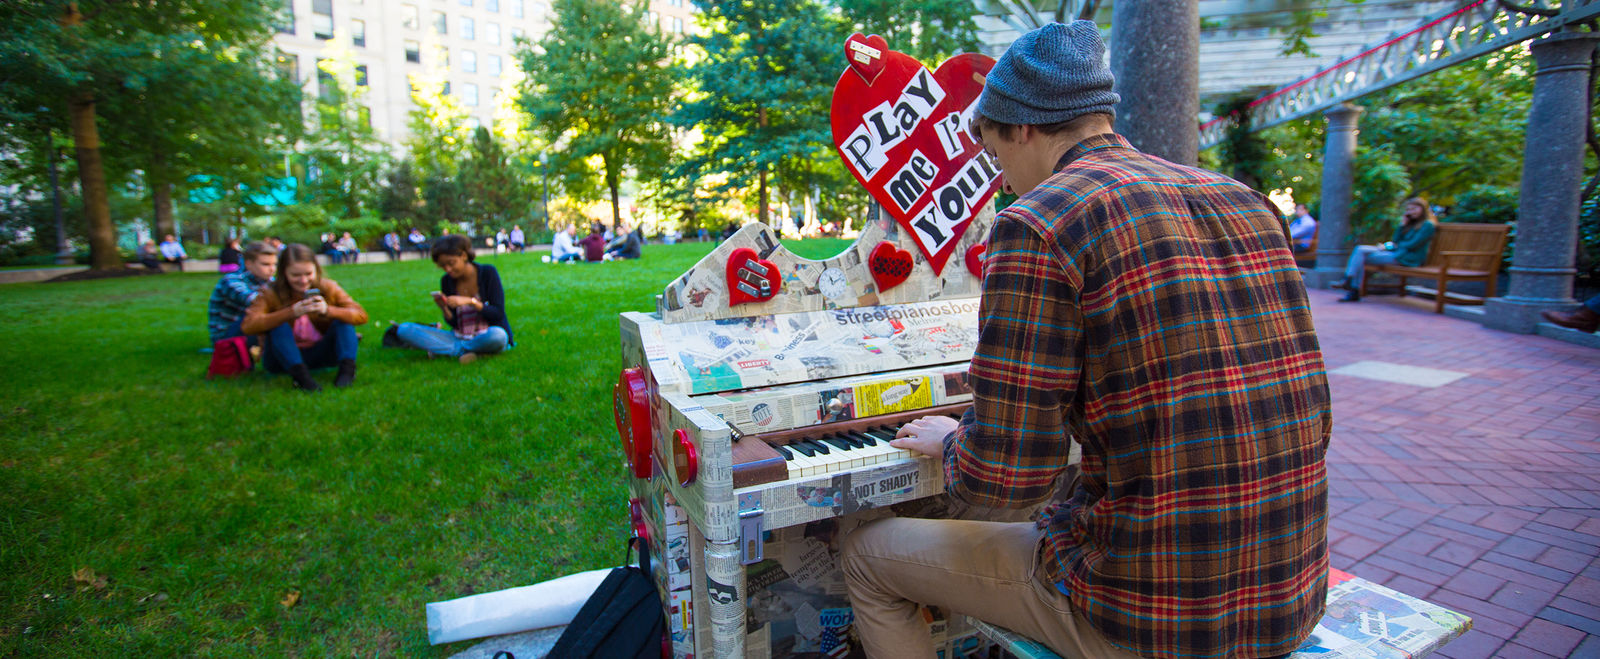 Man playing a piano in an outdoor park